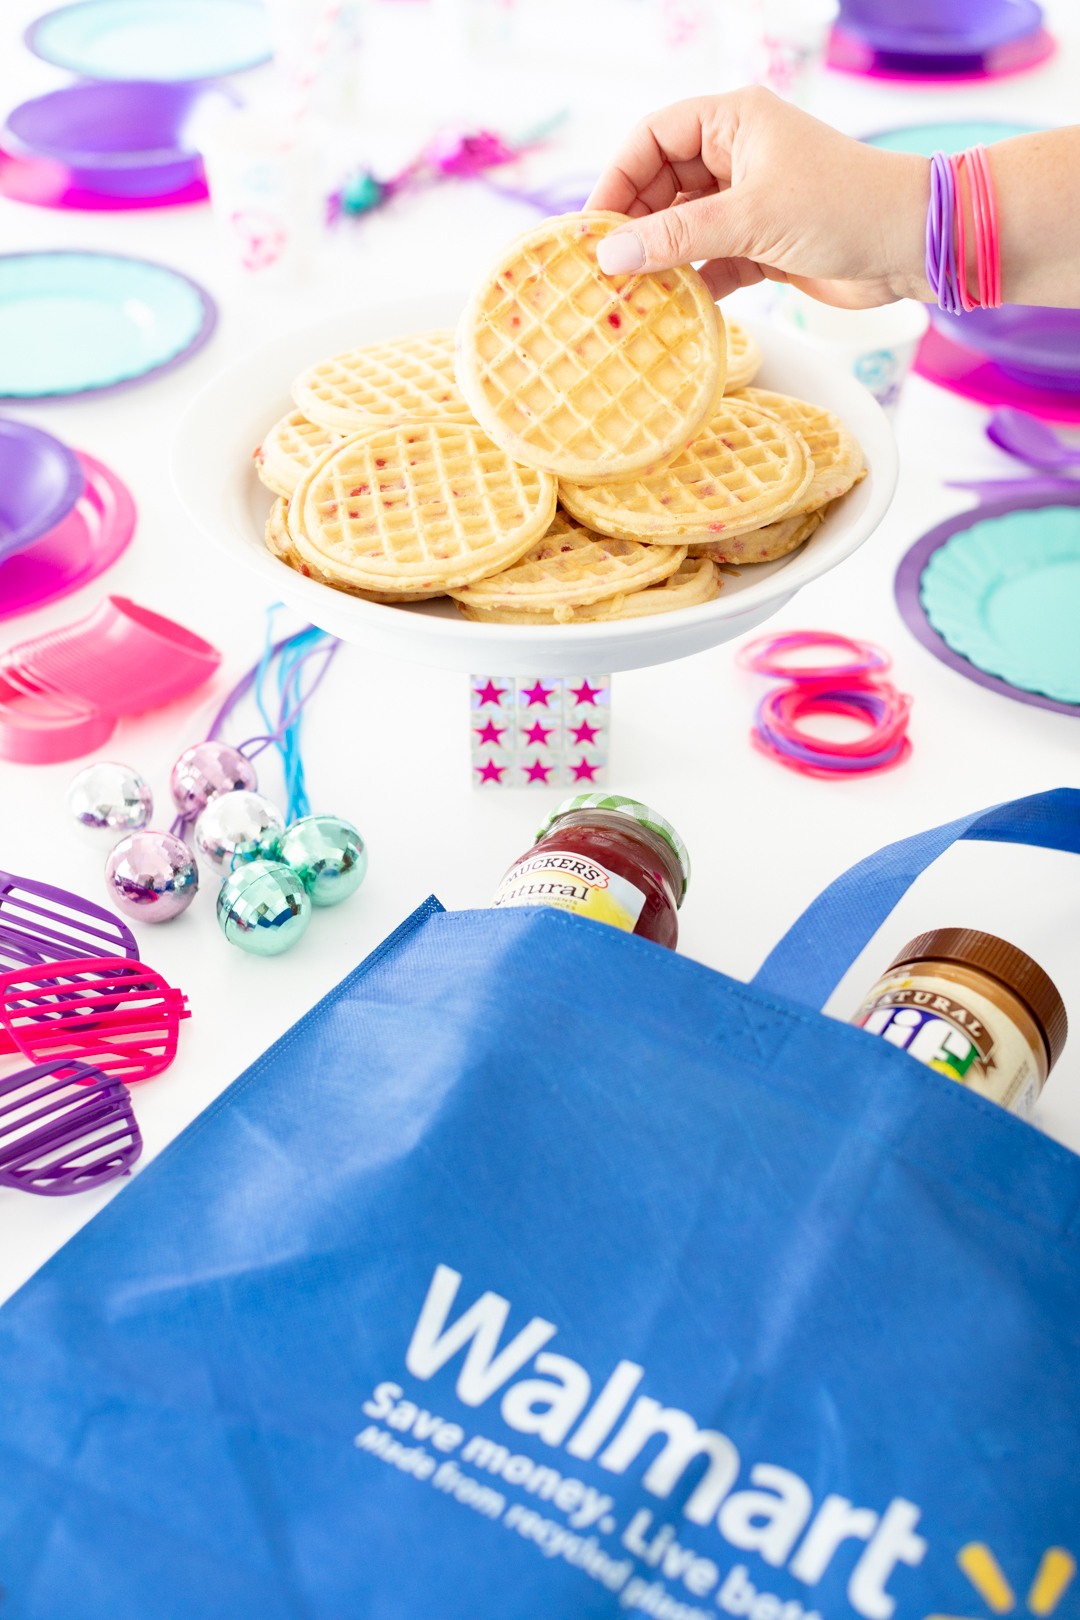 Walmart shopping bag and party supplies